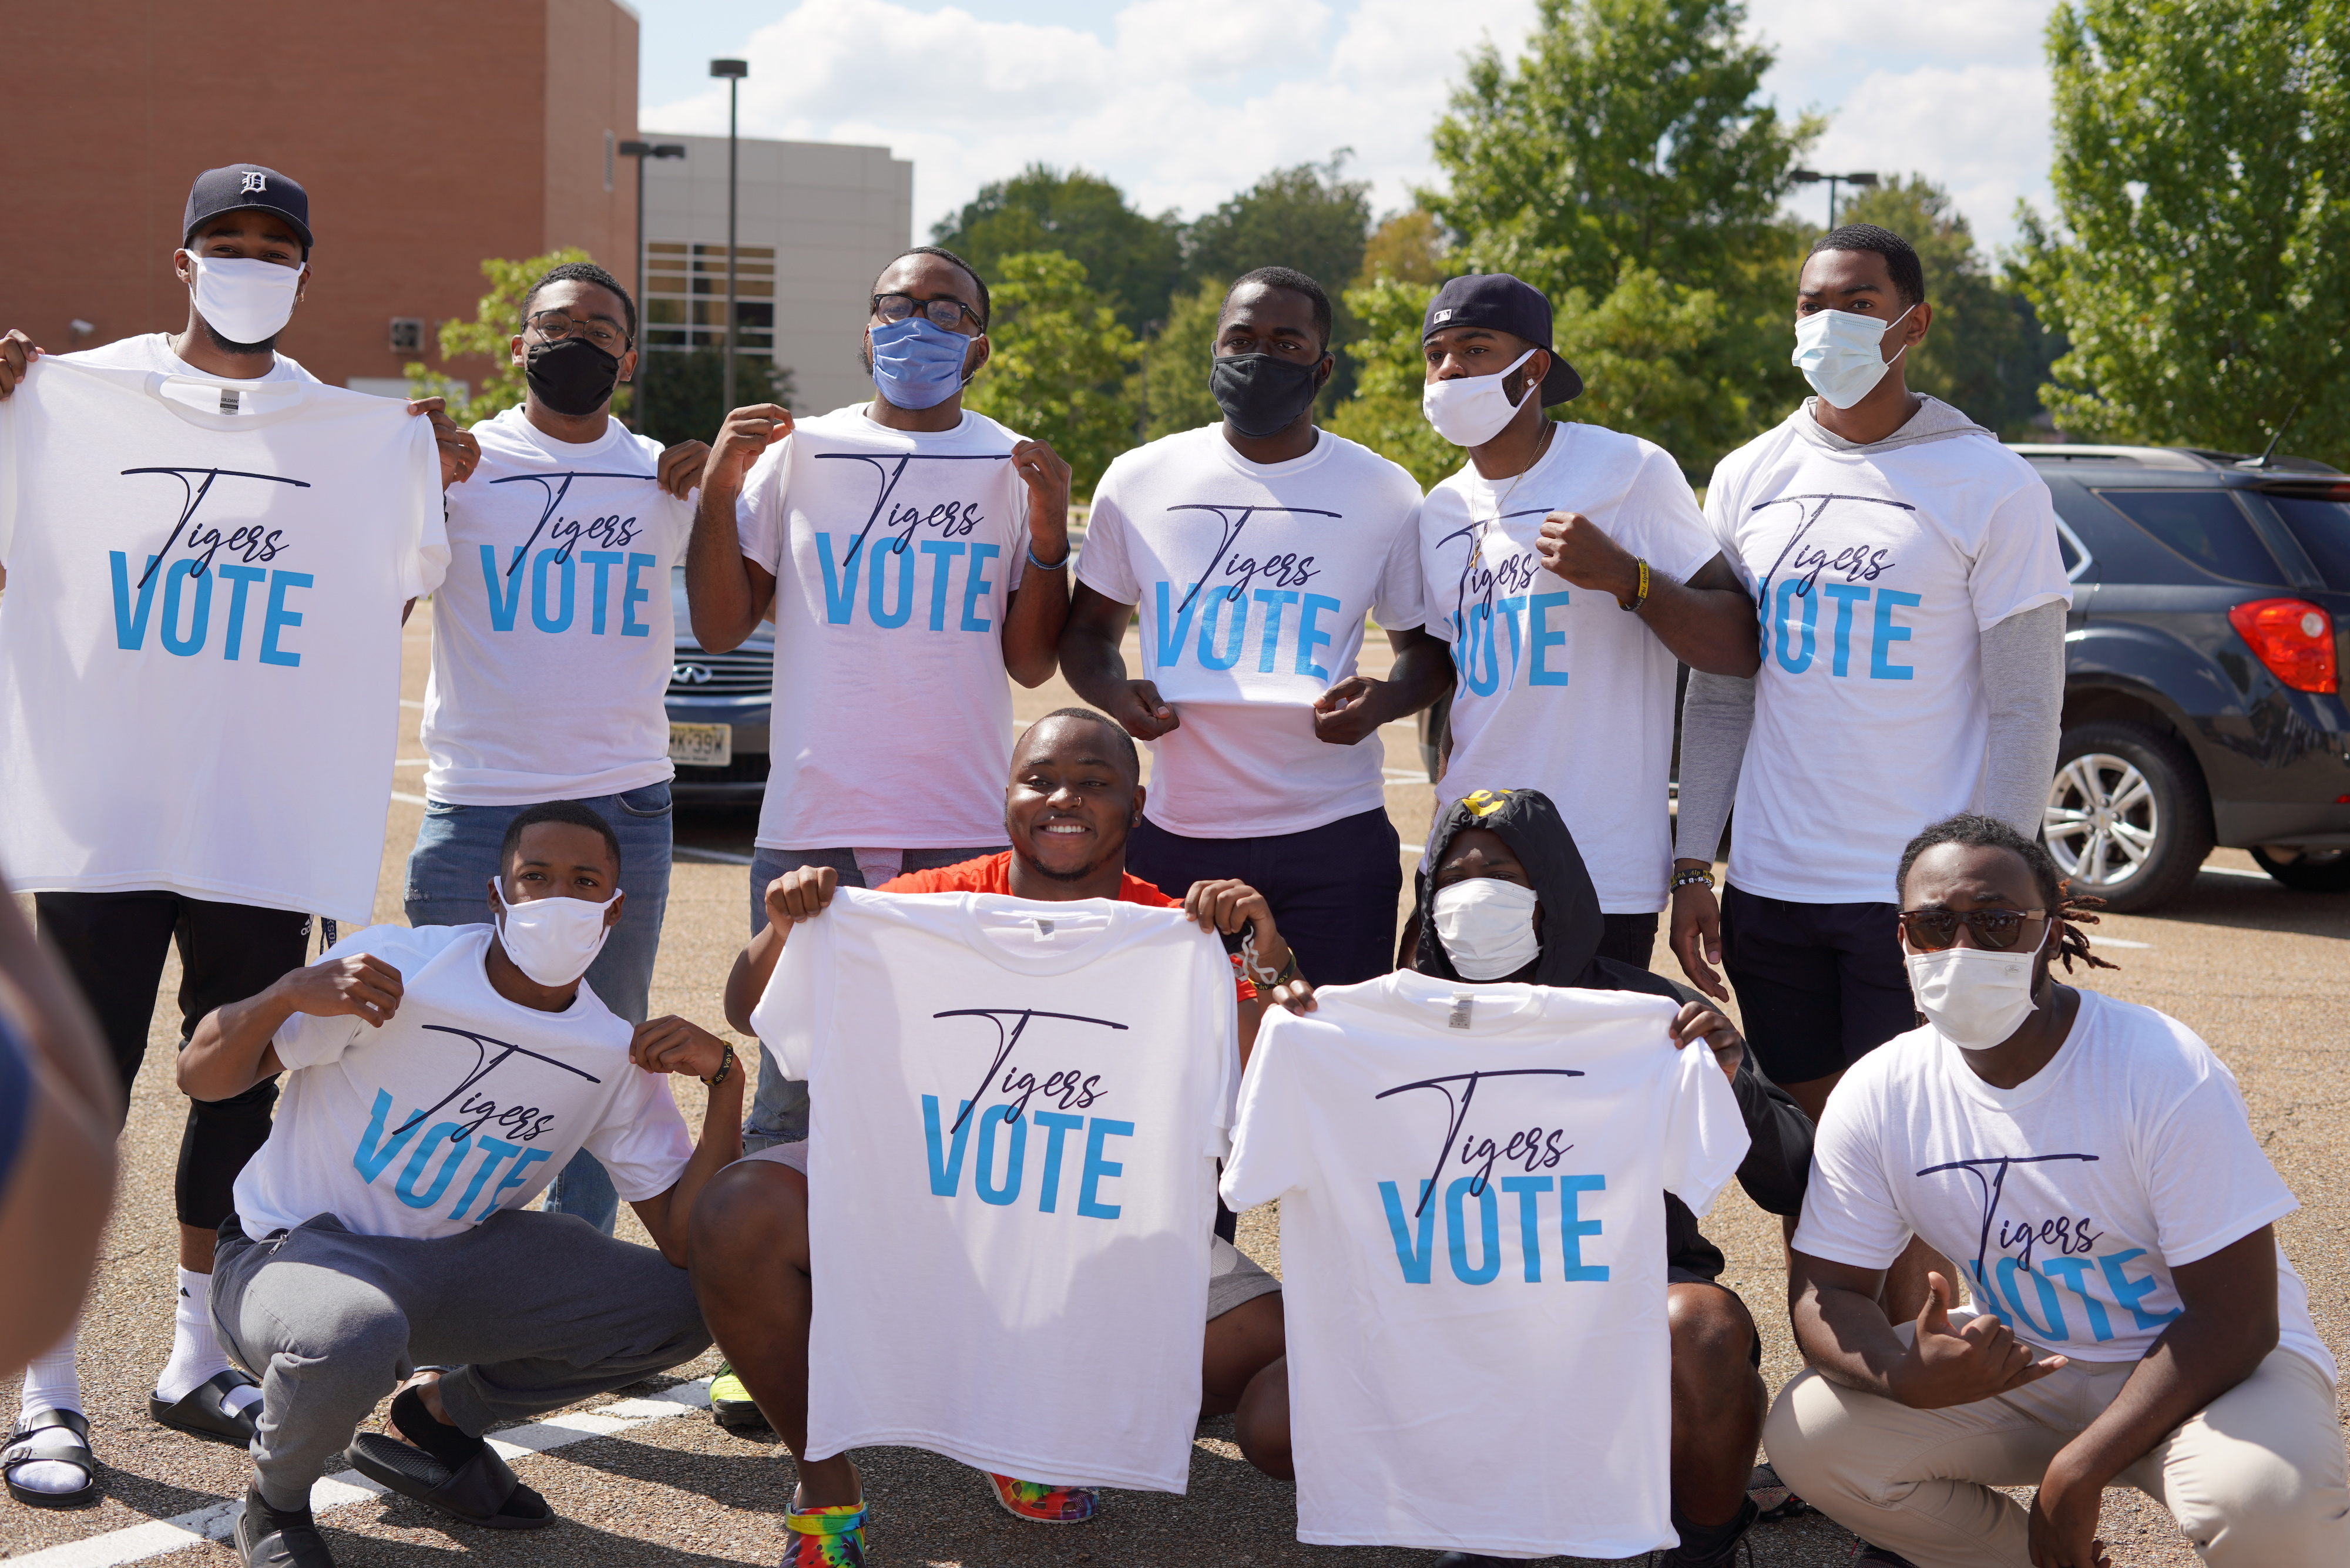 Individuals registering to vote were provided T-shirts. (Photo courtesy of Division of Student Affairs)